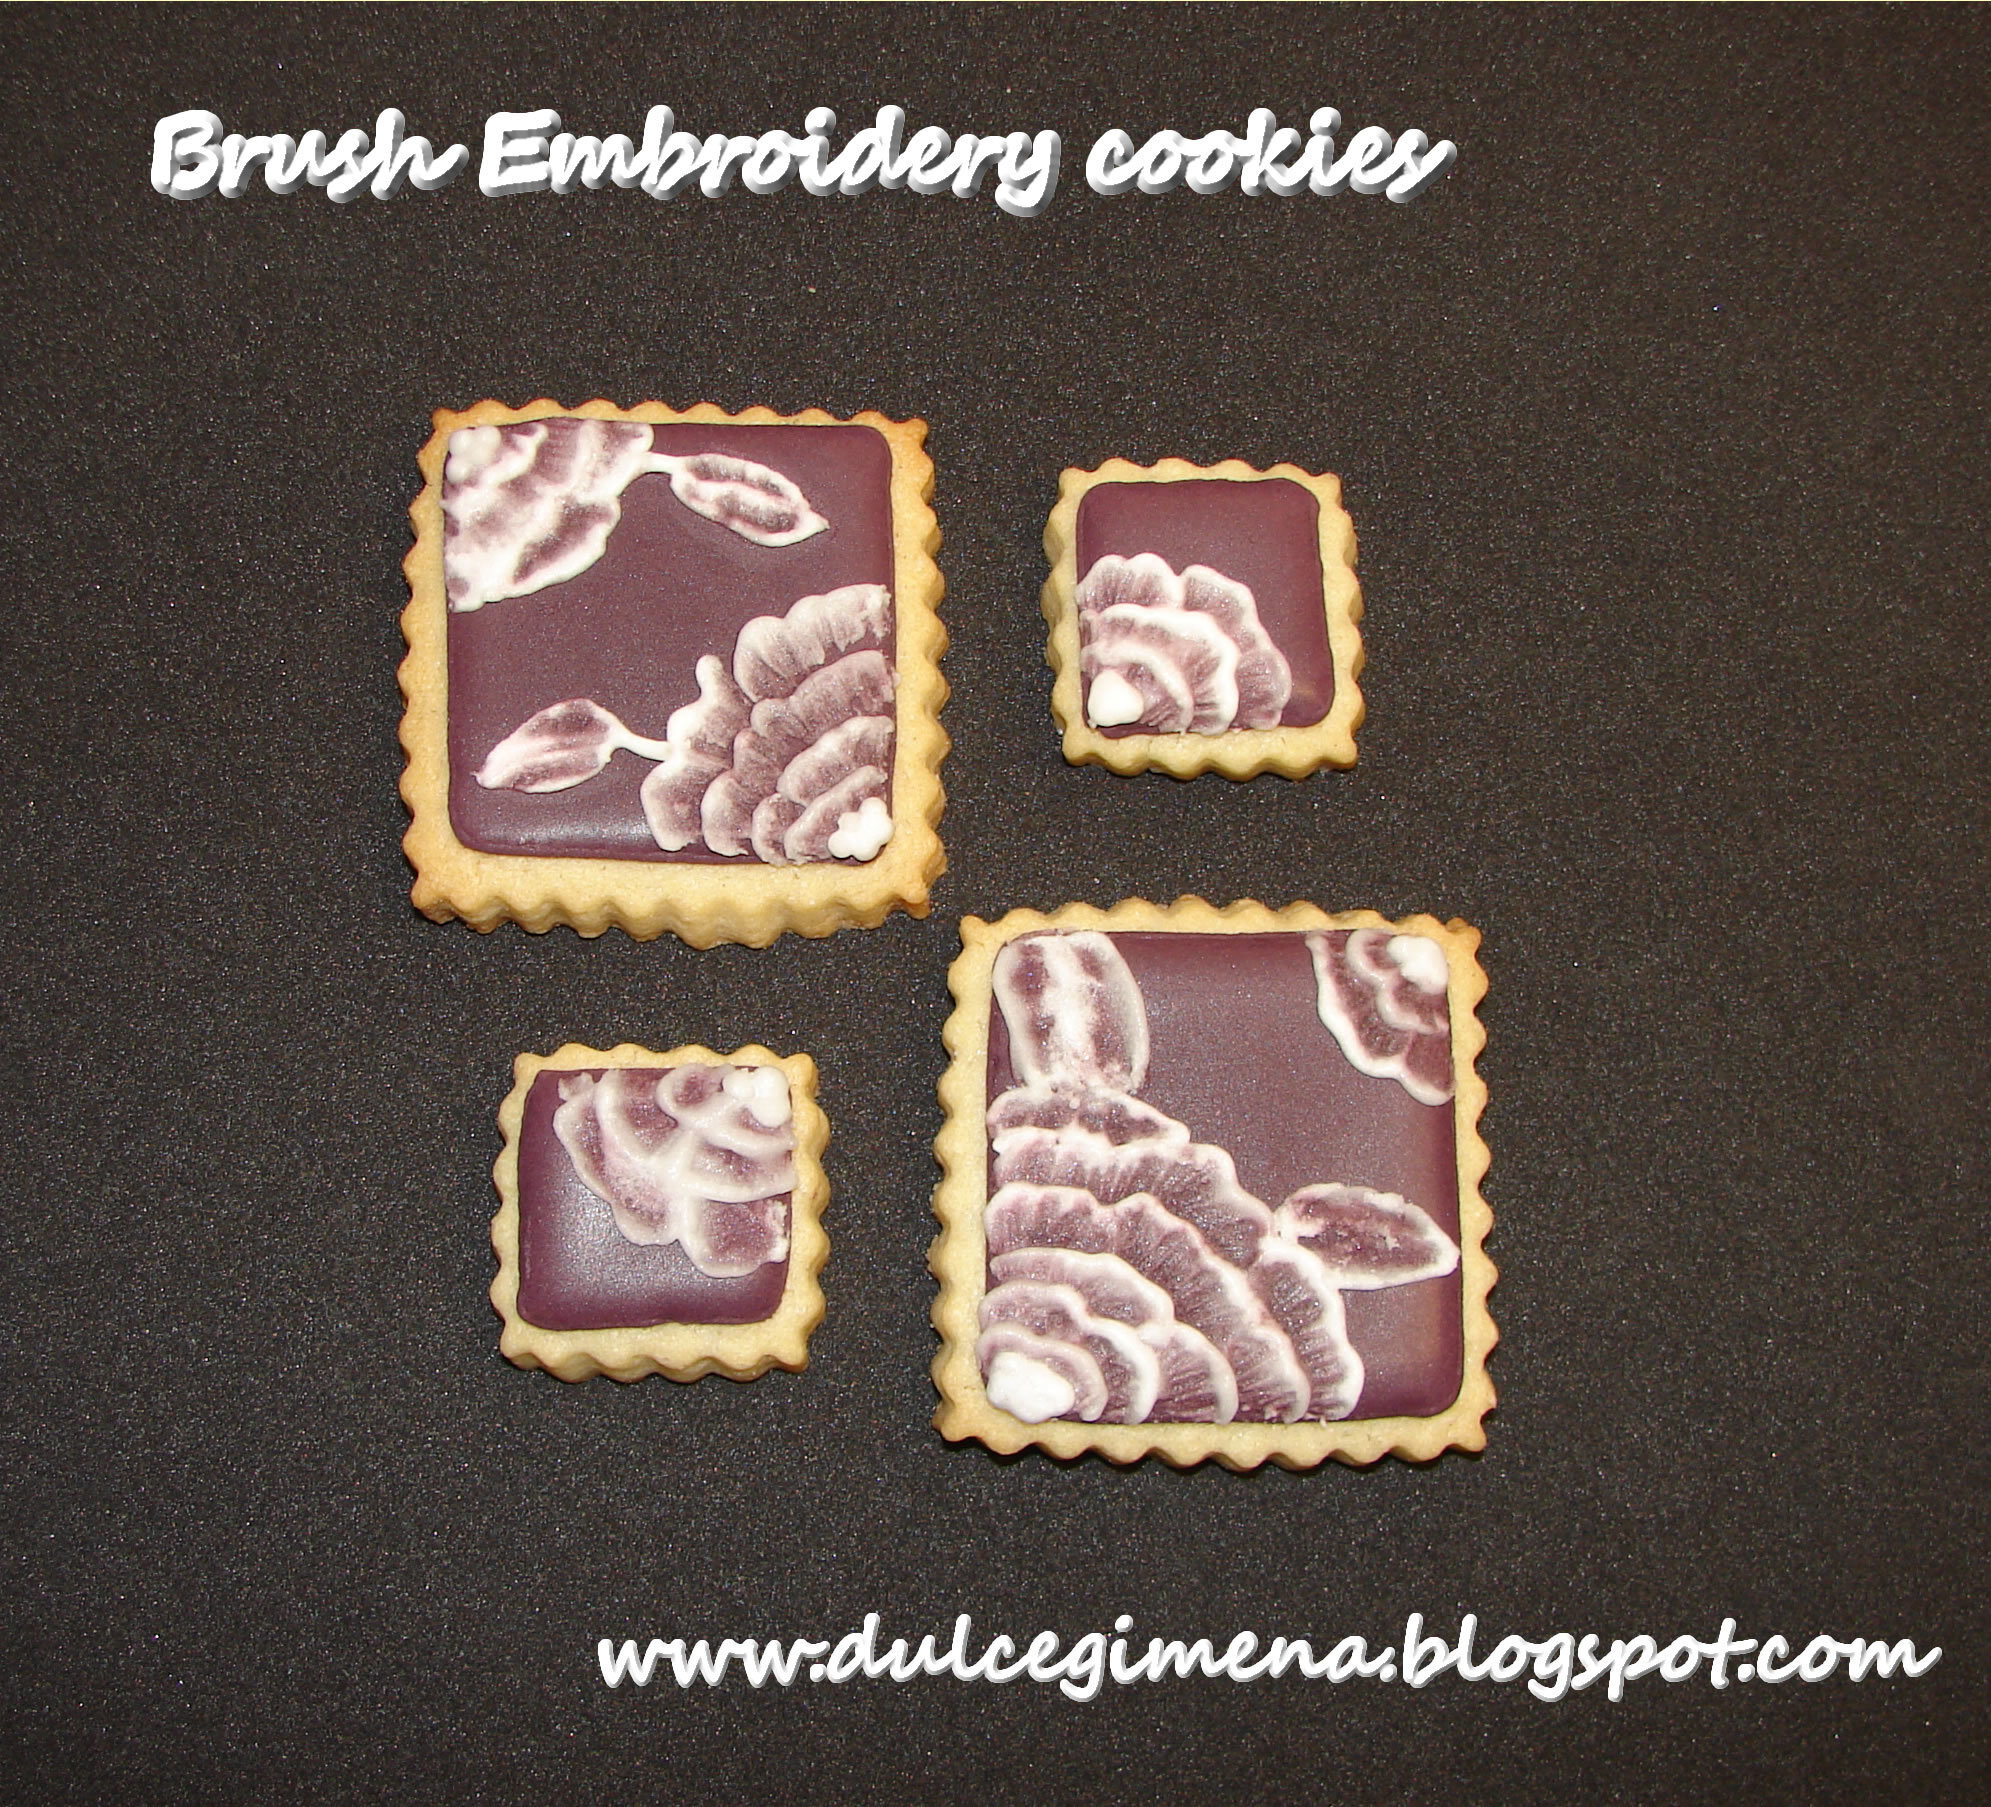 Brush Embroidery Cookies